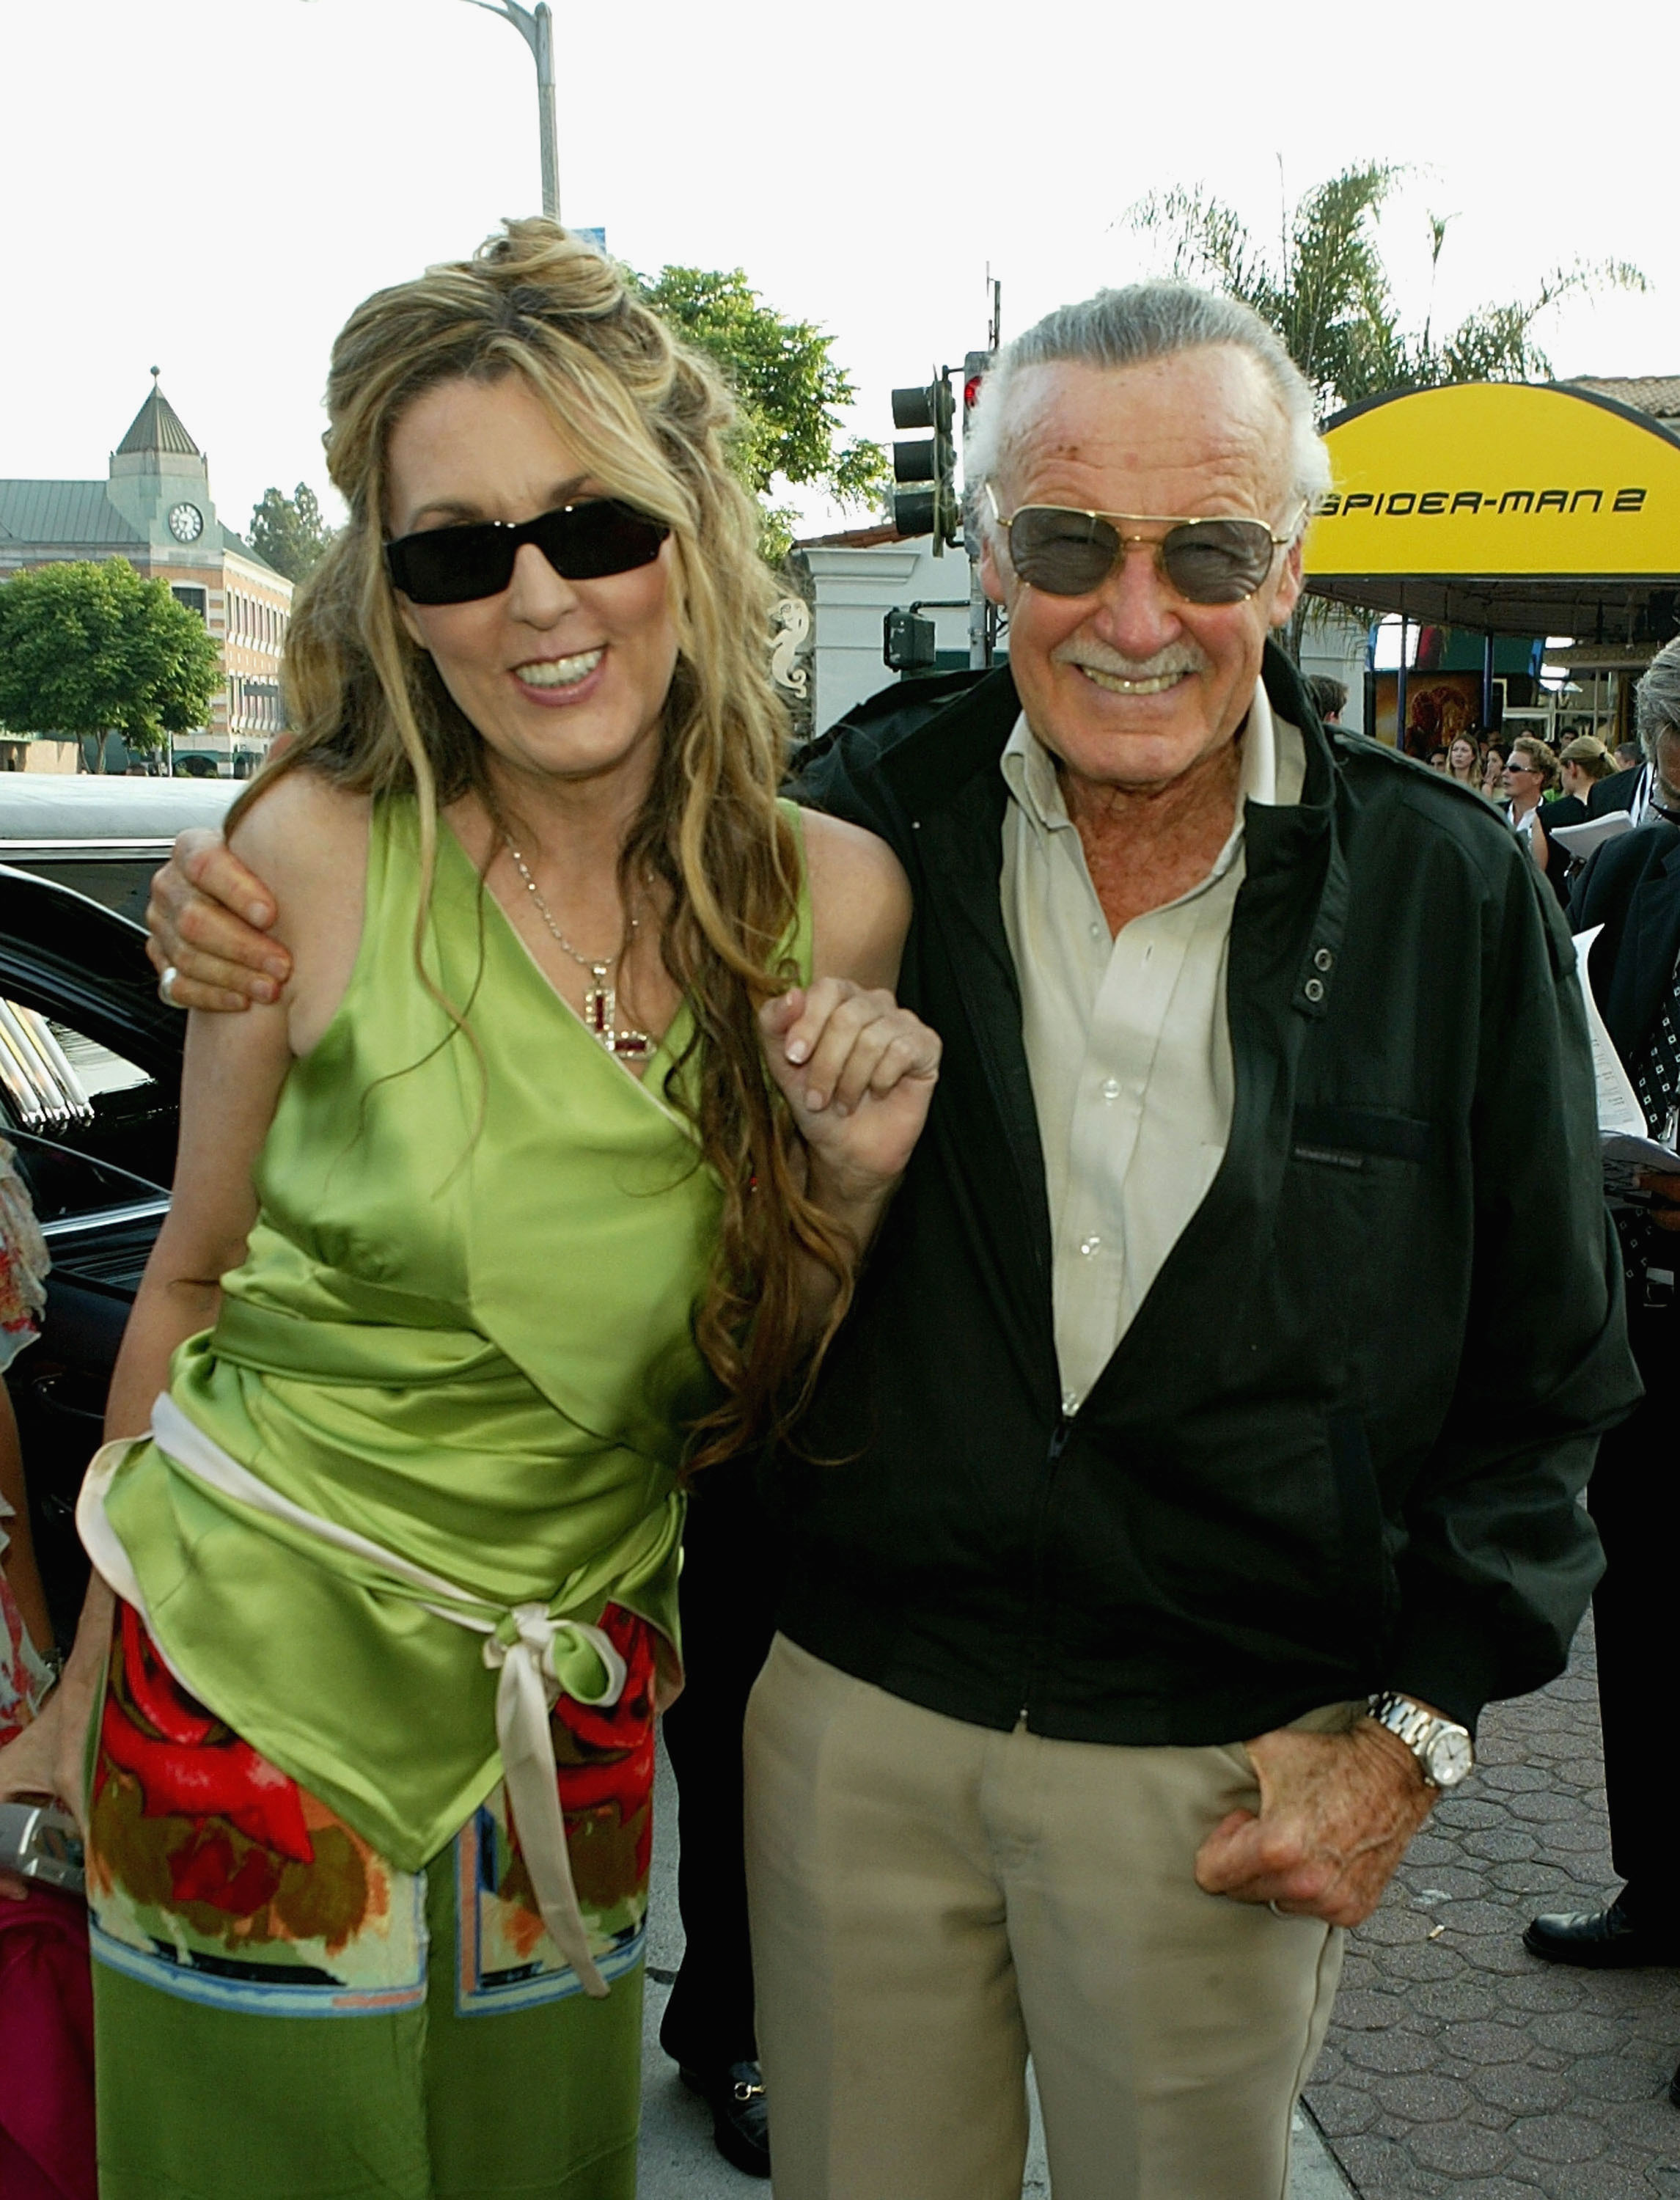 Stan Lee and daughter attend the premiere of the Sony film 'Spider-Man 2' on June 22, 2004 at the Mann Village Theater, in Westwood, California.